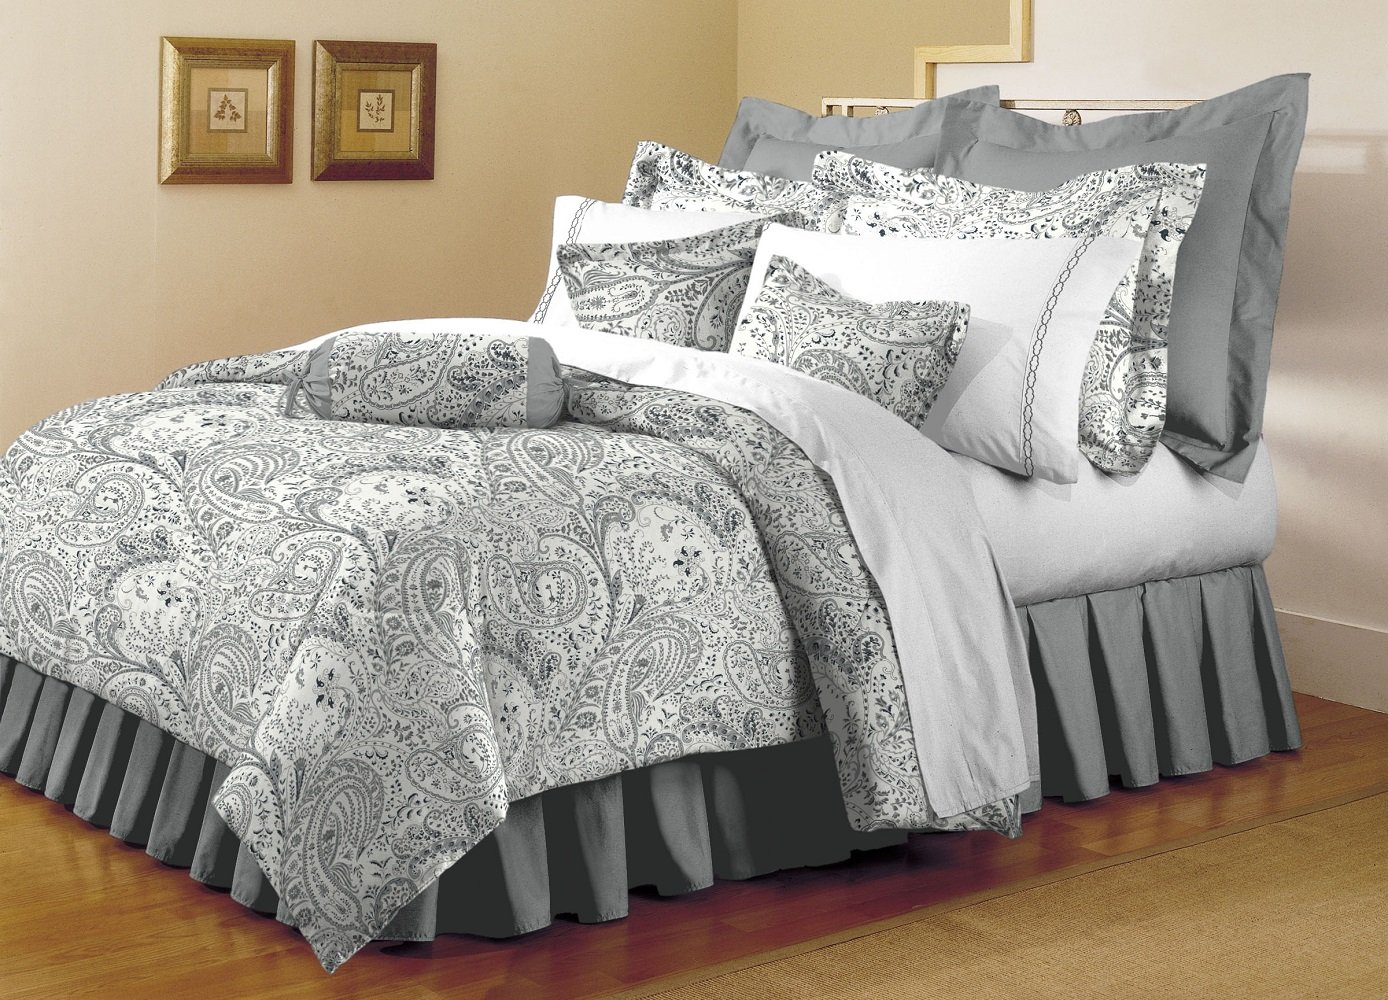 thinking queen magical cover duvet pin gray fringe pom